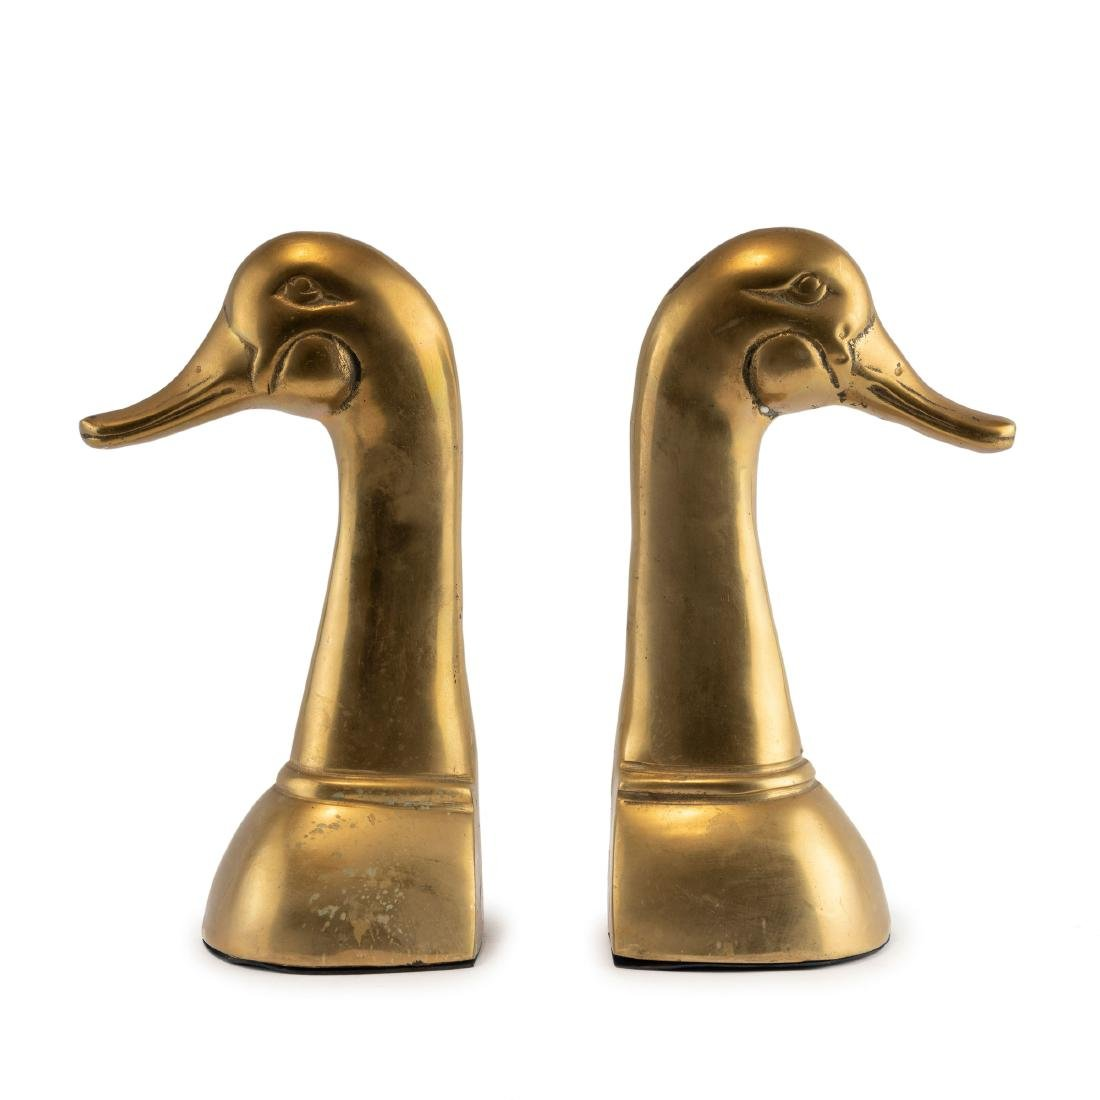 Two 'Geese' bookends, 1930/40s